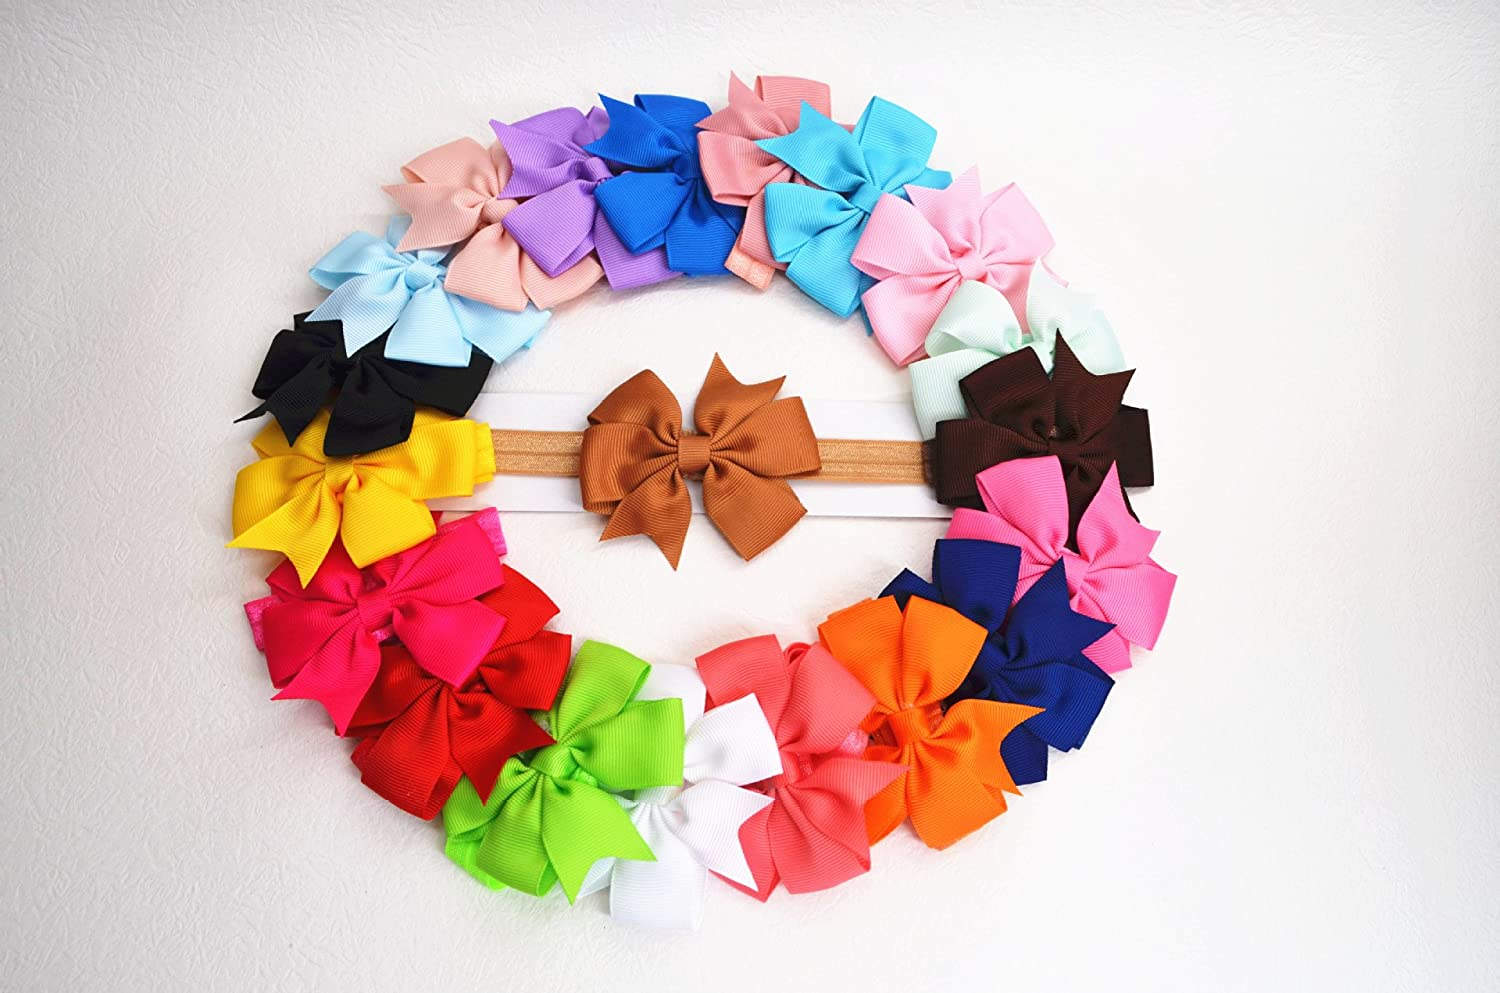 20PCS Baby Baptism Headbands for anywhere and Fashion.Newborn Christening Hair Bows with many colors OPUSS